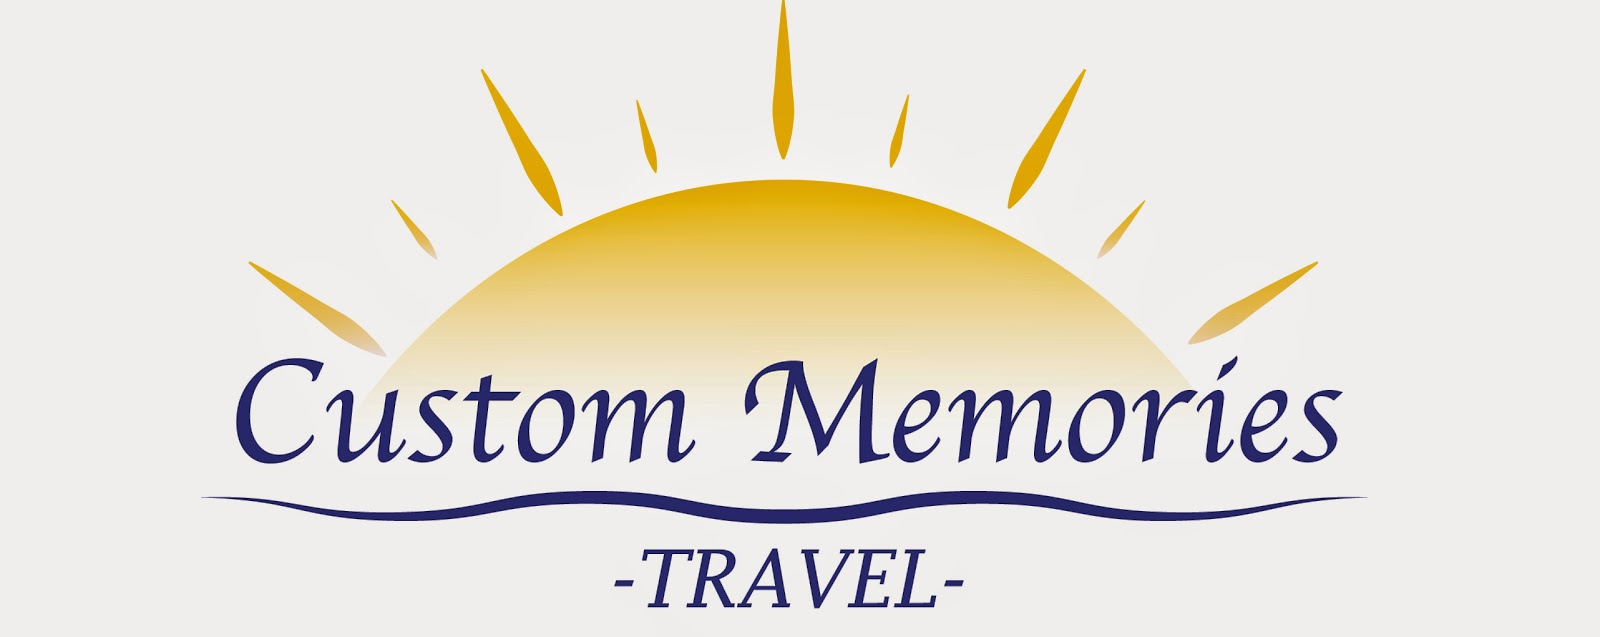 Free Wedding Website - Custom Memories Travel, Luxury Honeymoon Registry, Watertown NY